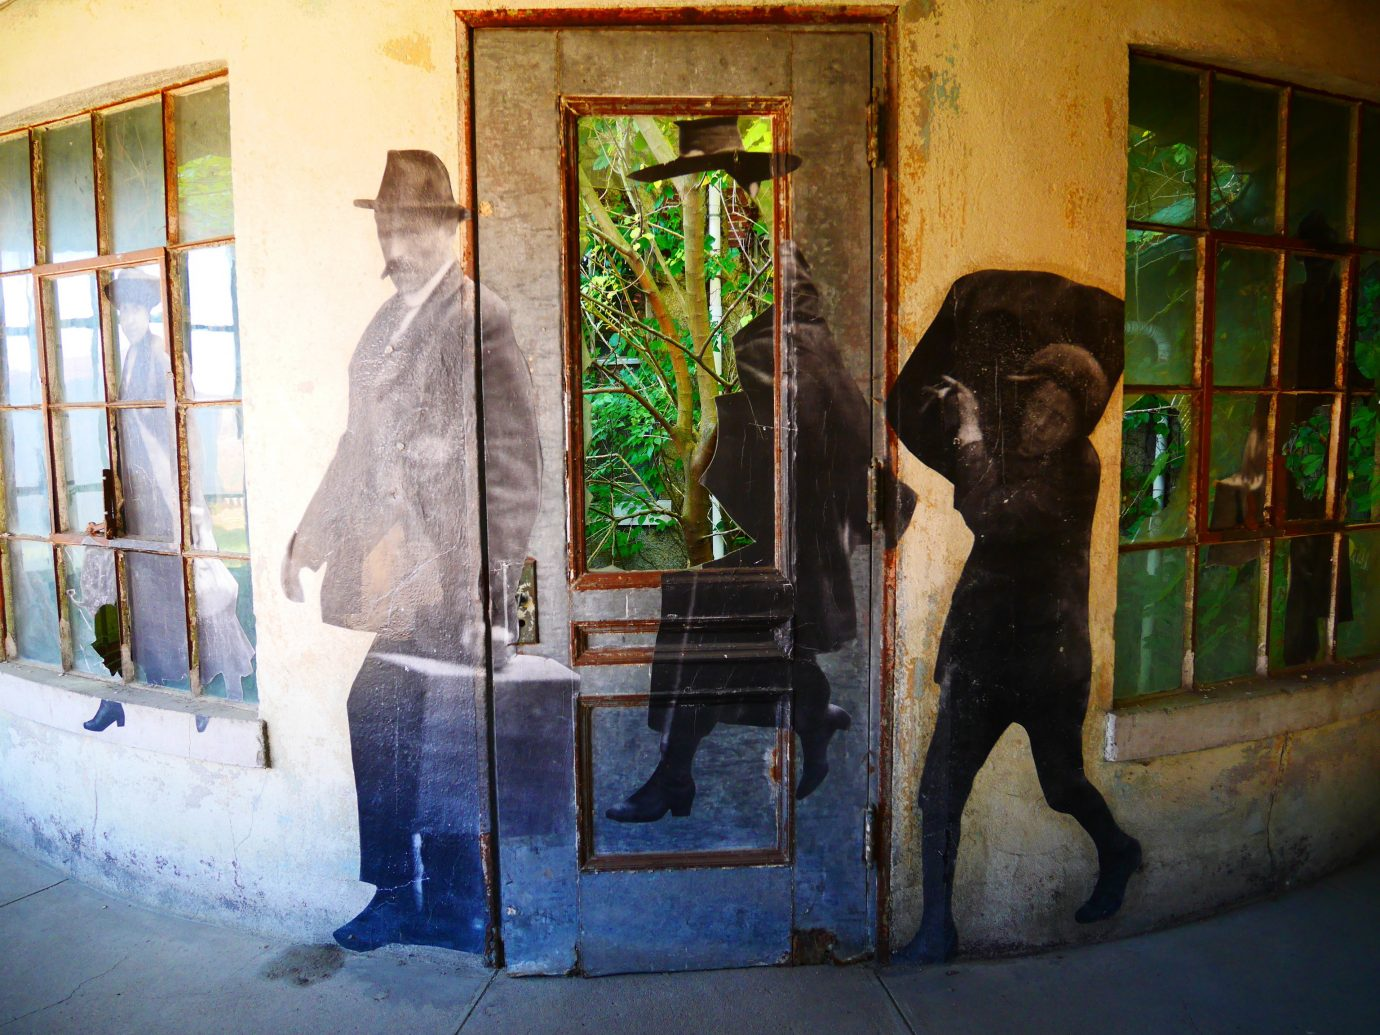 Offbeat color photograph wall art black street tourist attraction art gallery painting